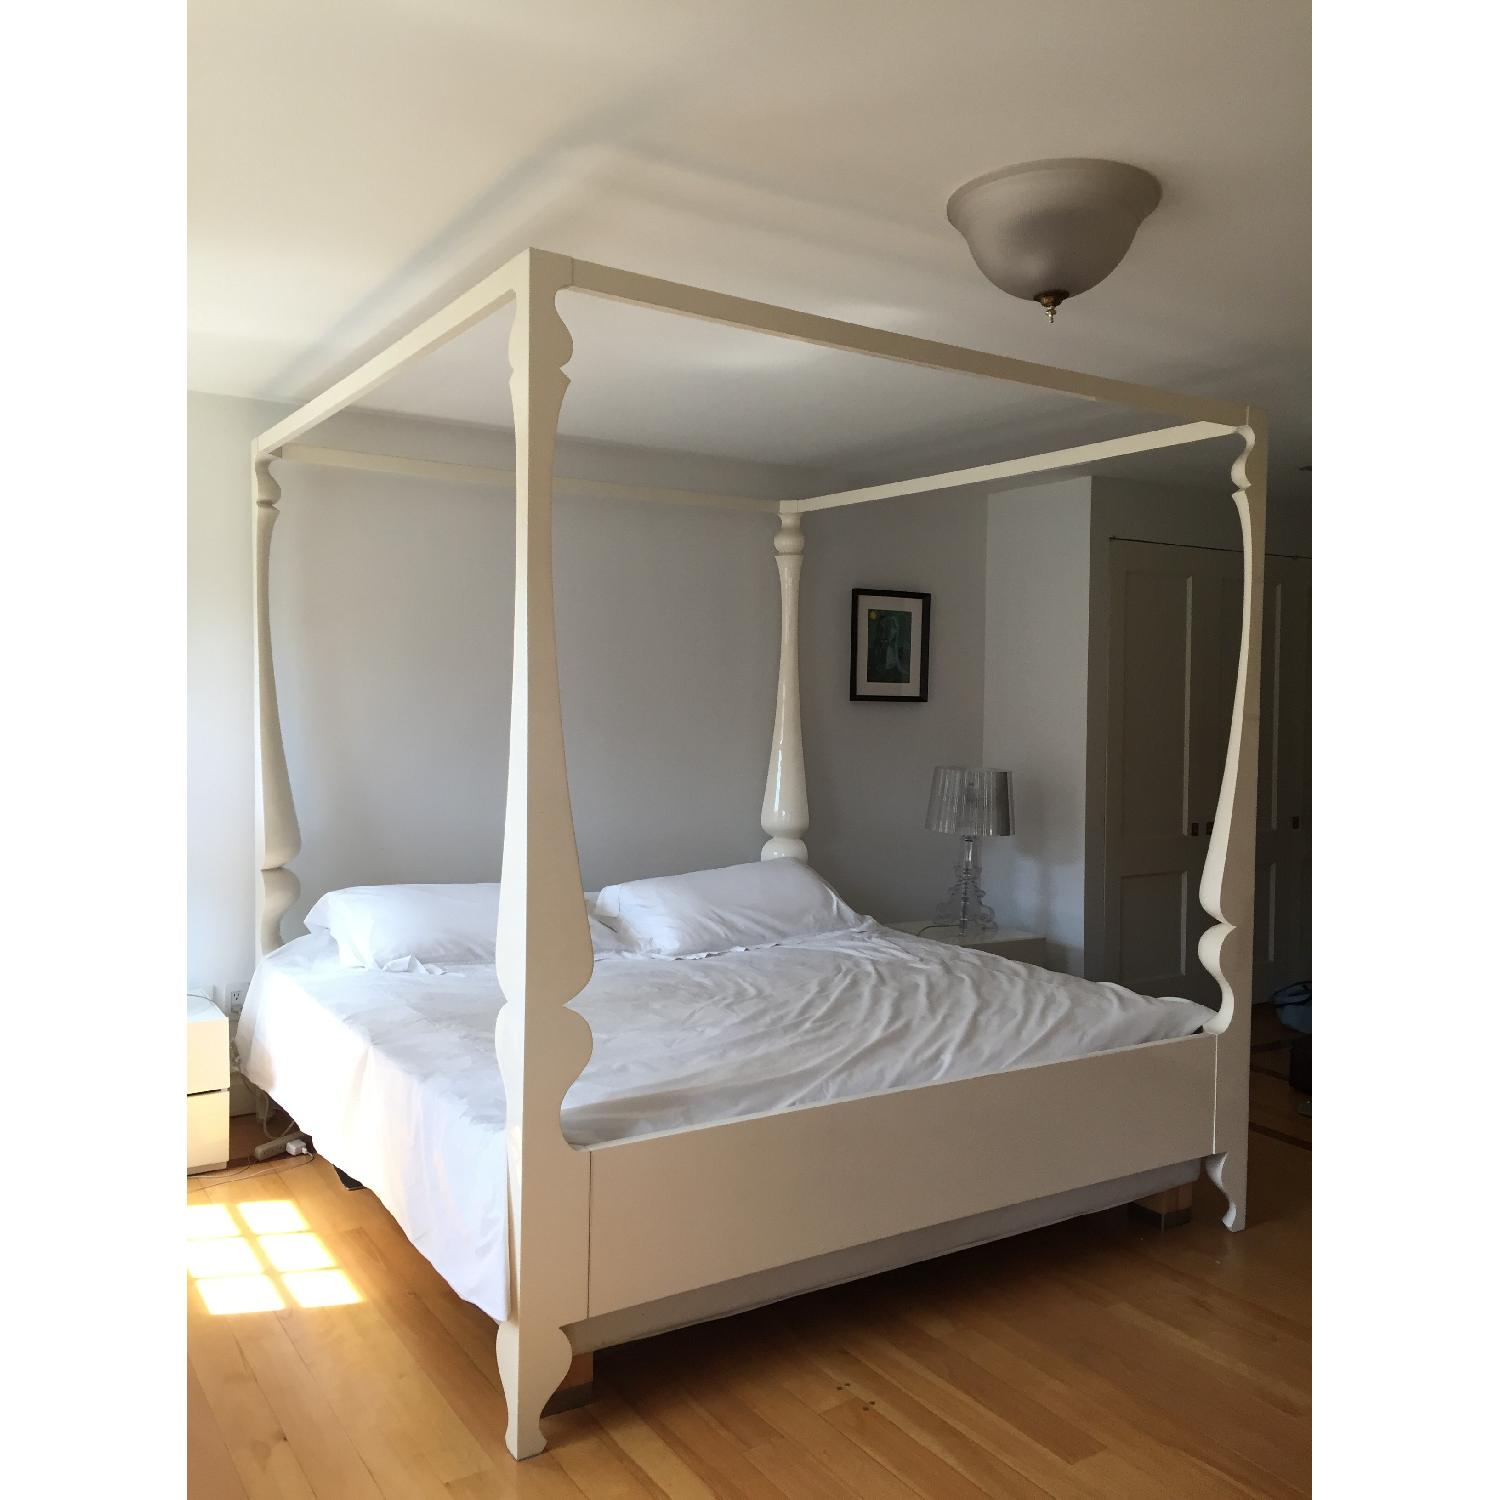 Reeves Design Louis Four Poster King Bed in White - image-2